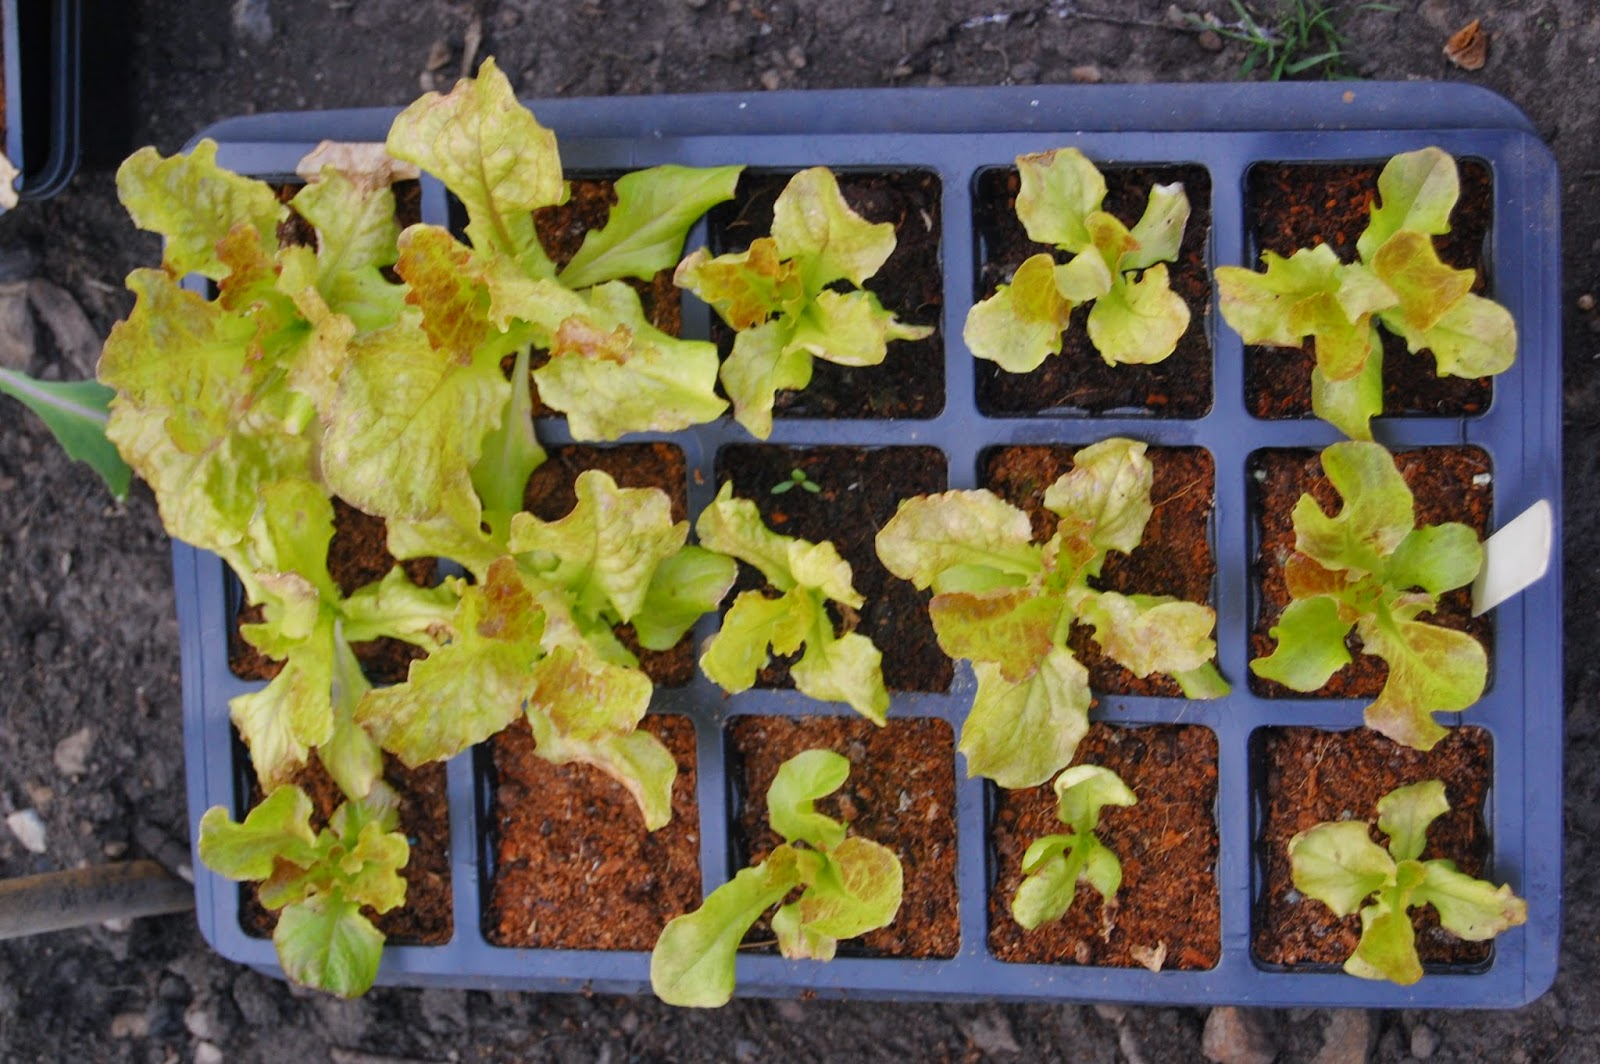 Lettuce in a seed tray #lifeonpigrow